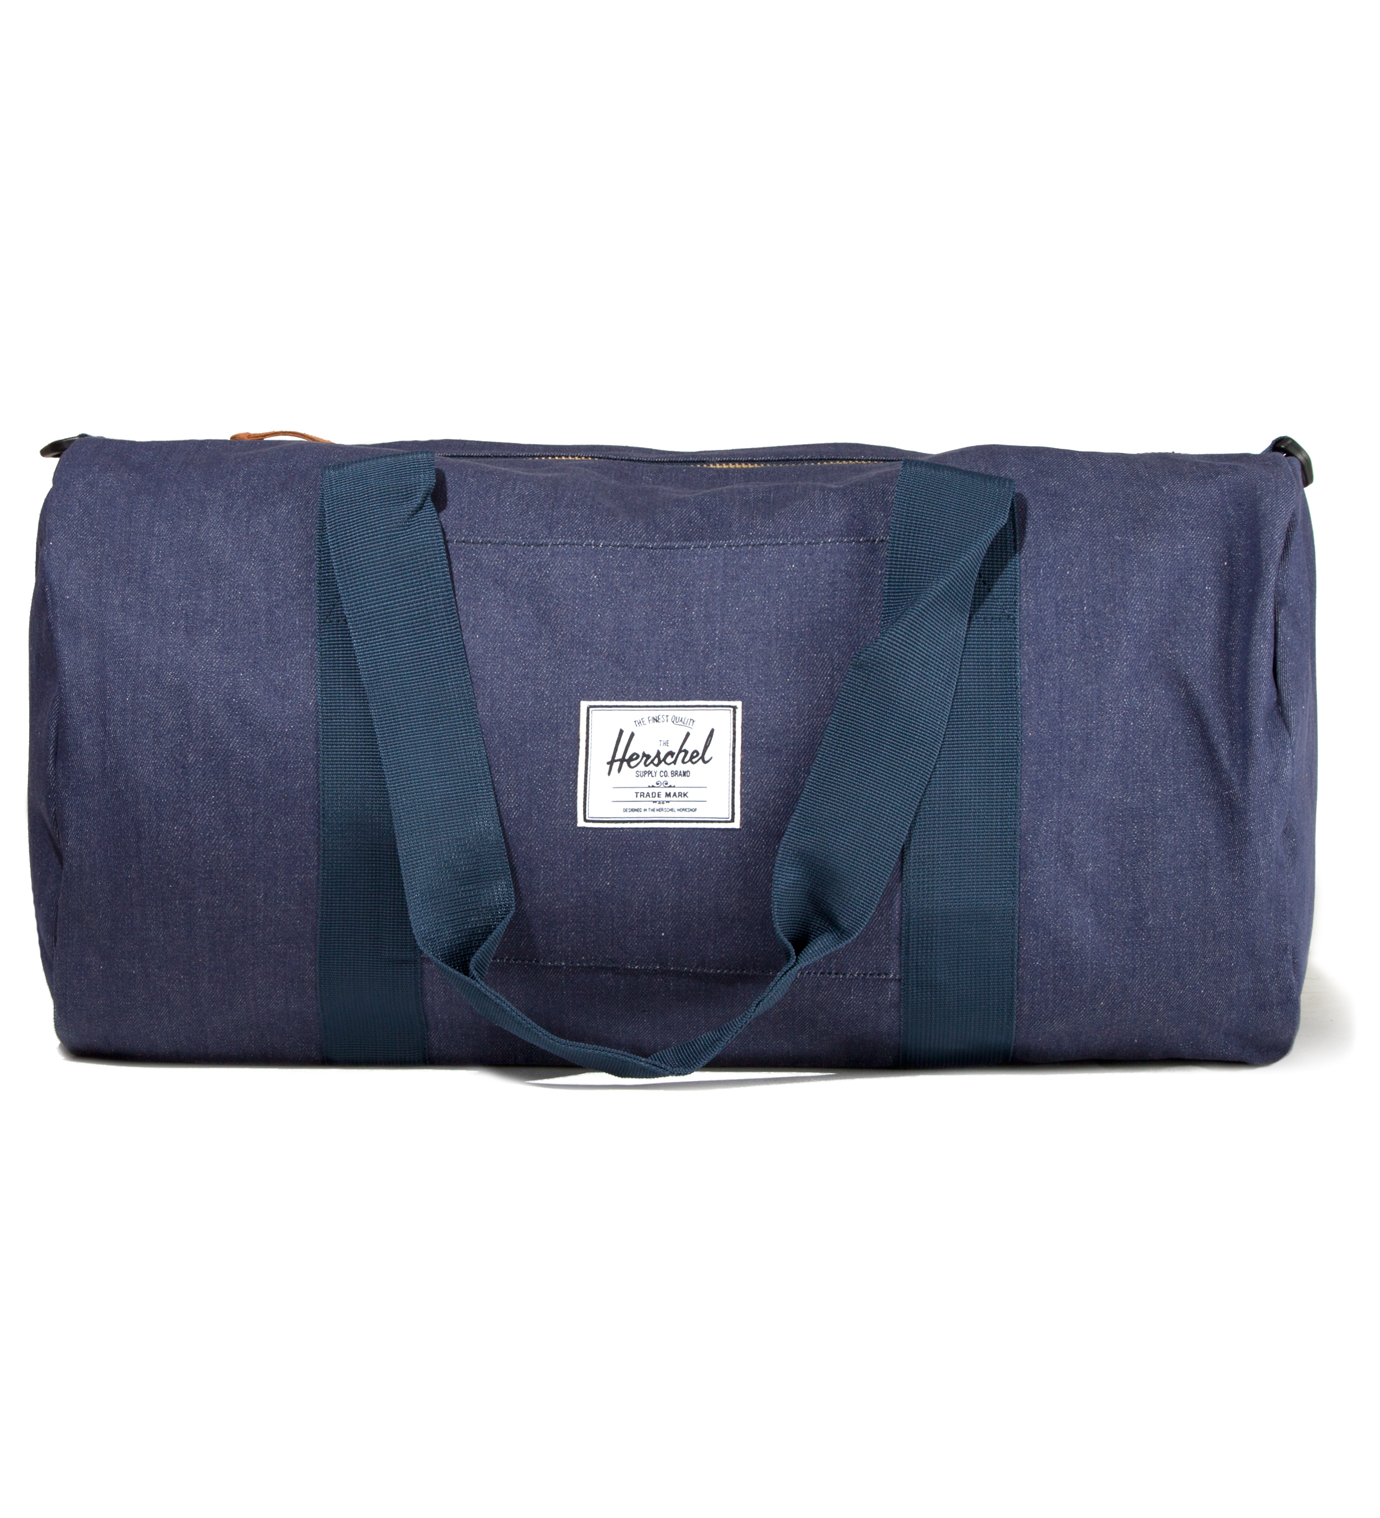 Herschel Supply Co. Dark Denim Sutton Bag